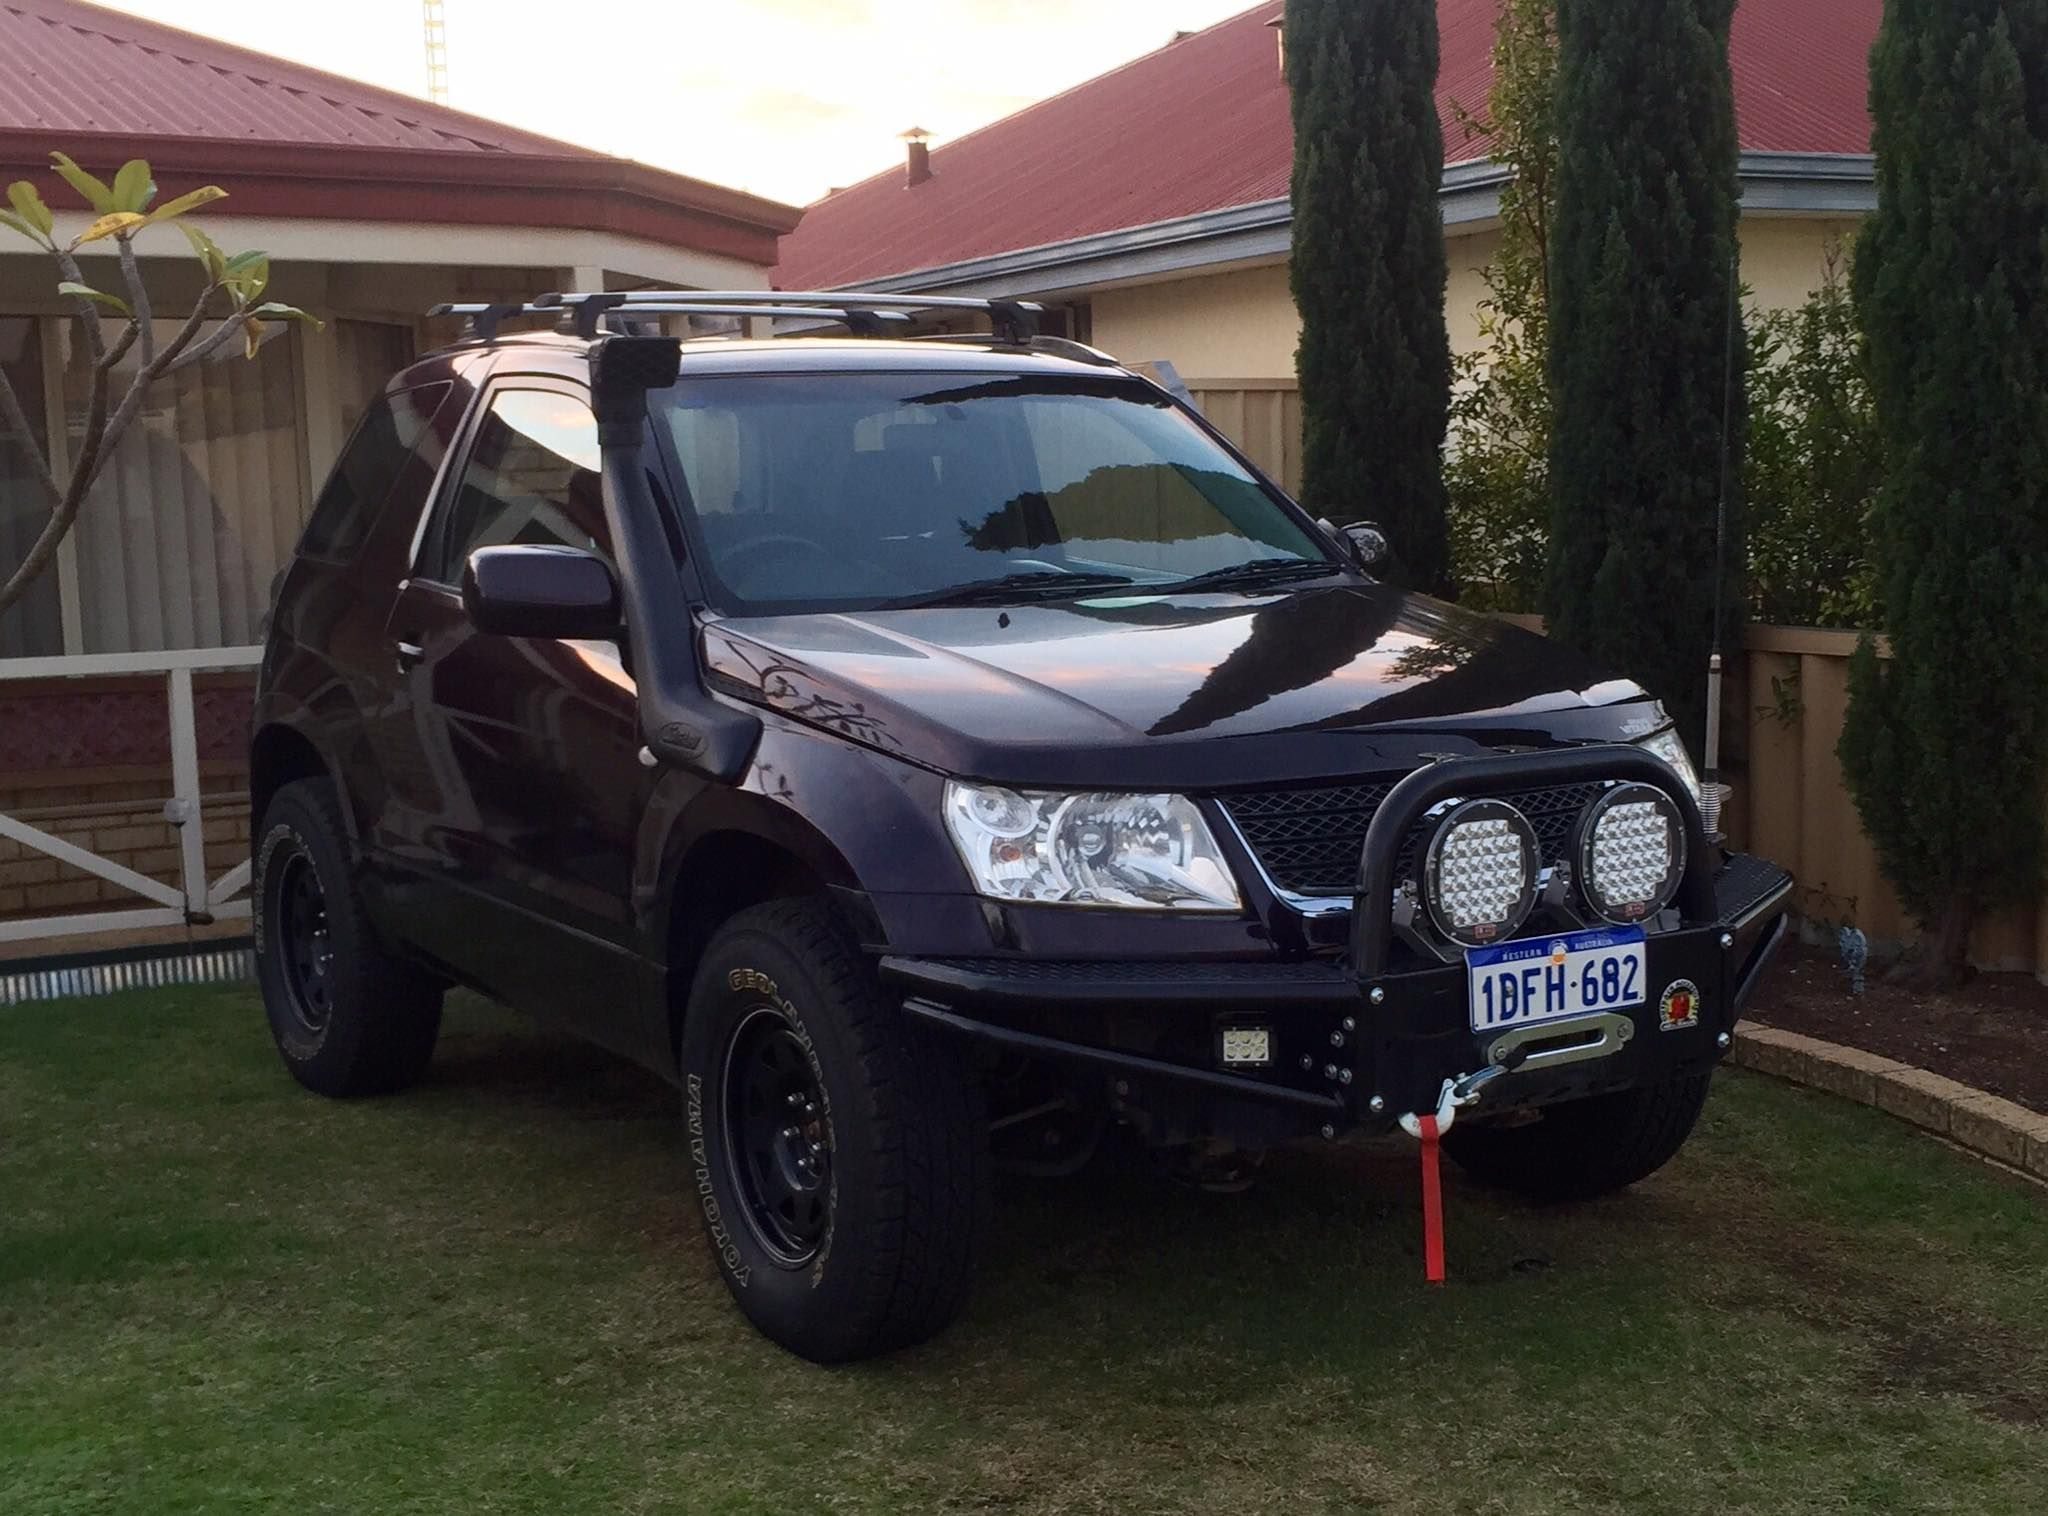 Suzuki Grand Vitara Vehicle Accessories 4x4 Accessories